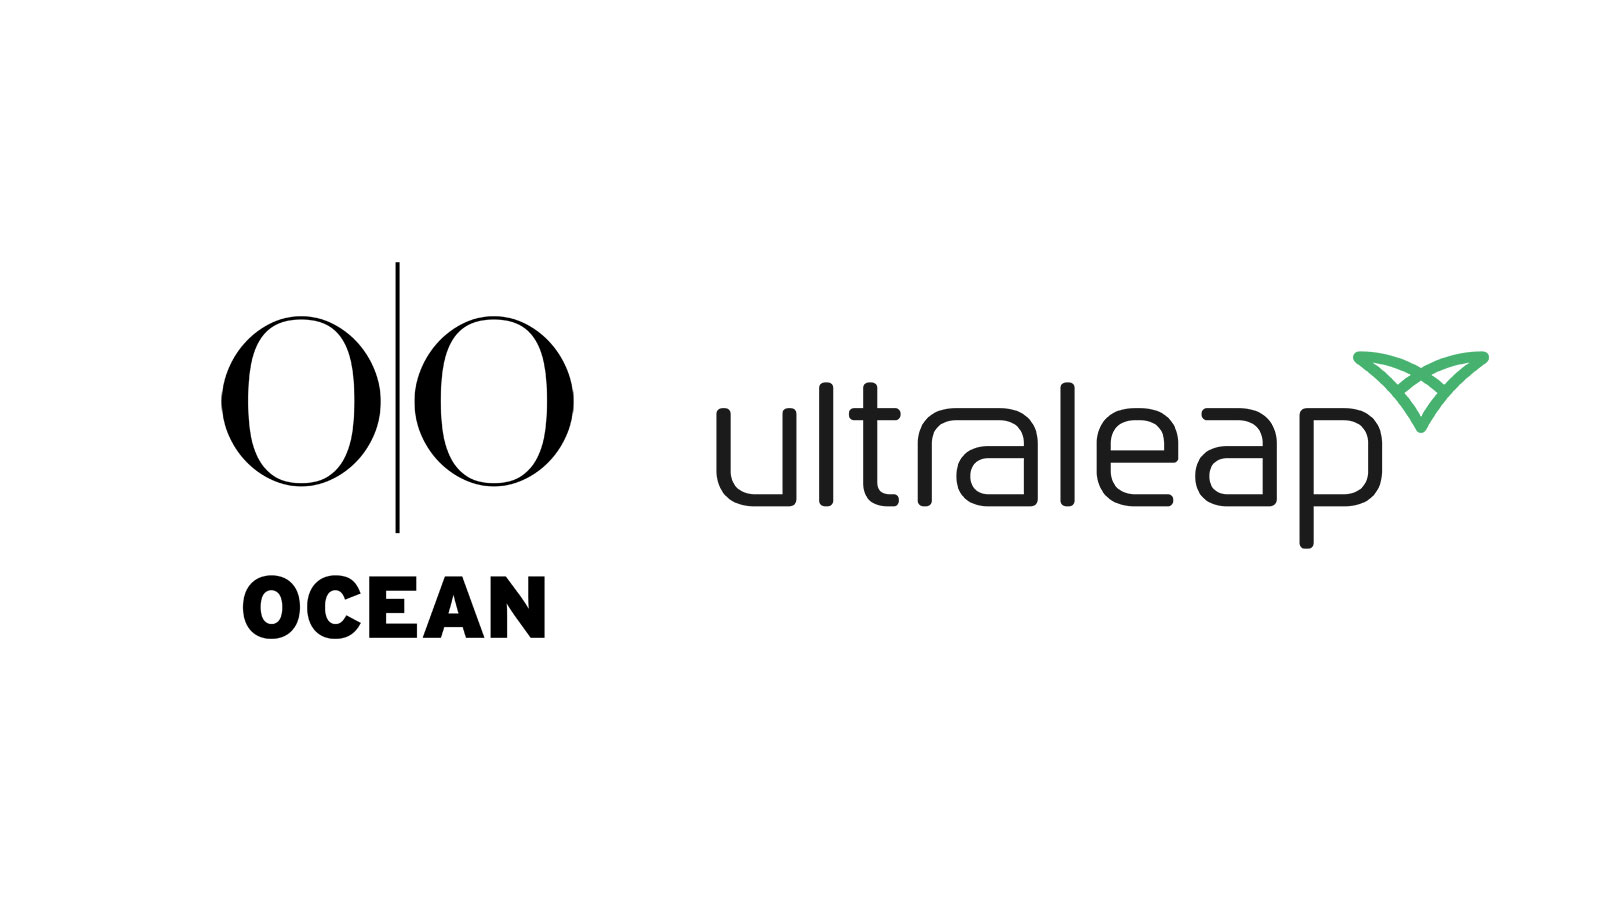 Ocean Outdoor and Ultraleap logos